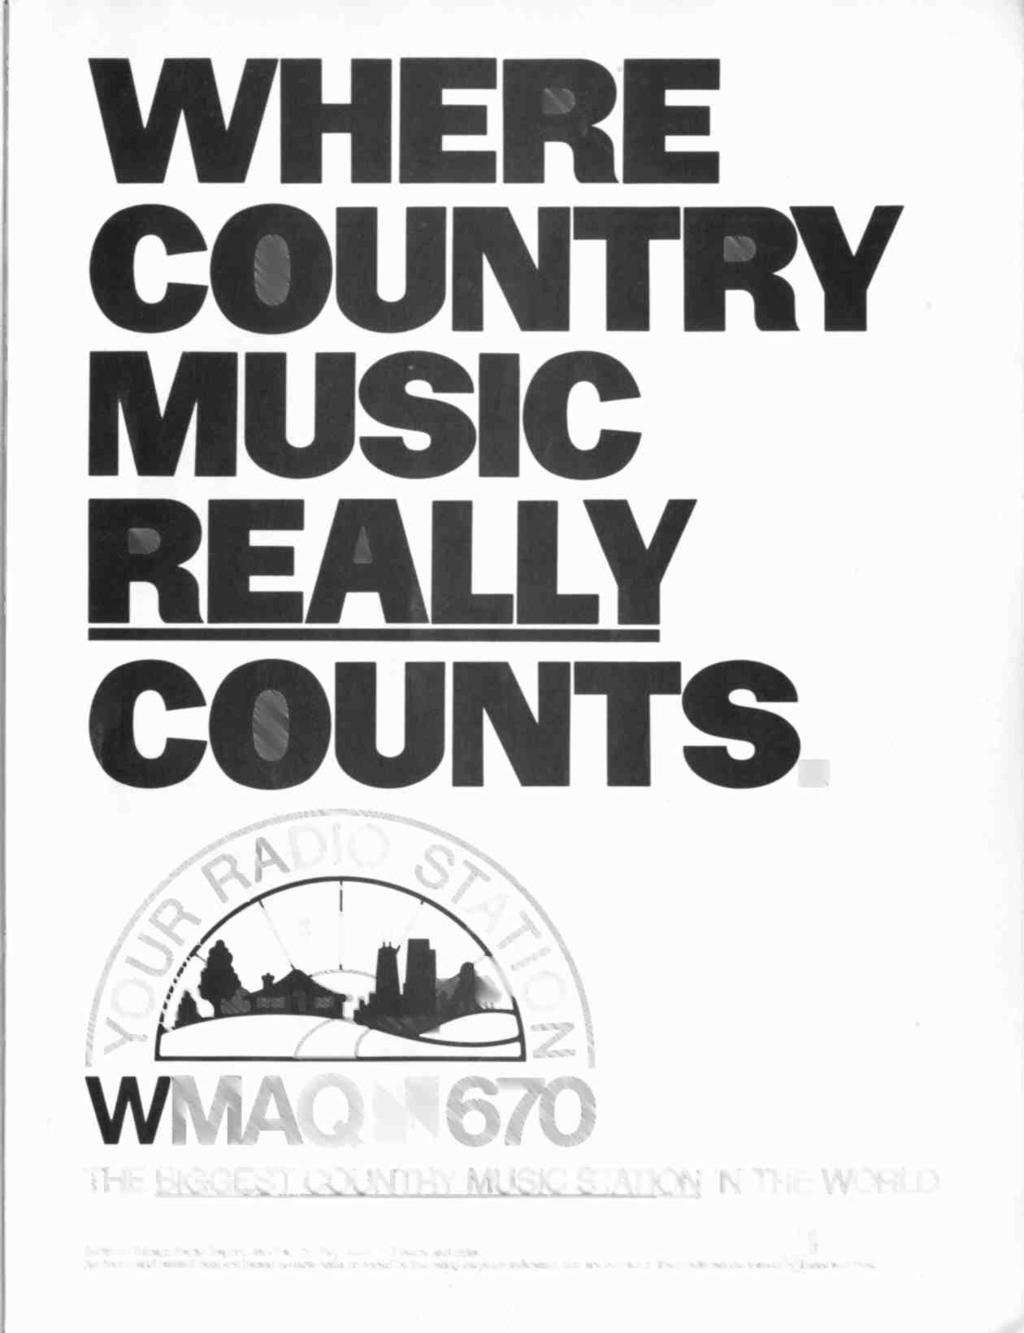 WHERE COUNTRY MUSC REALLY COUNTS WMAQh67O THE